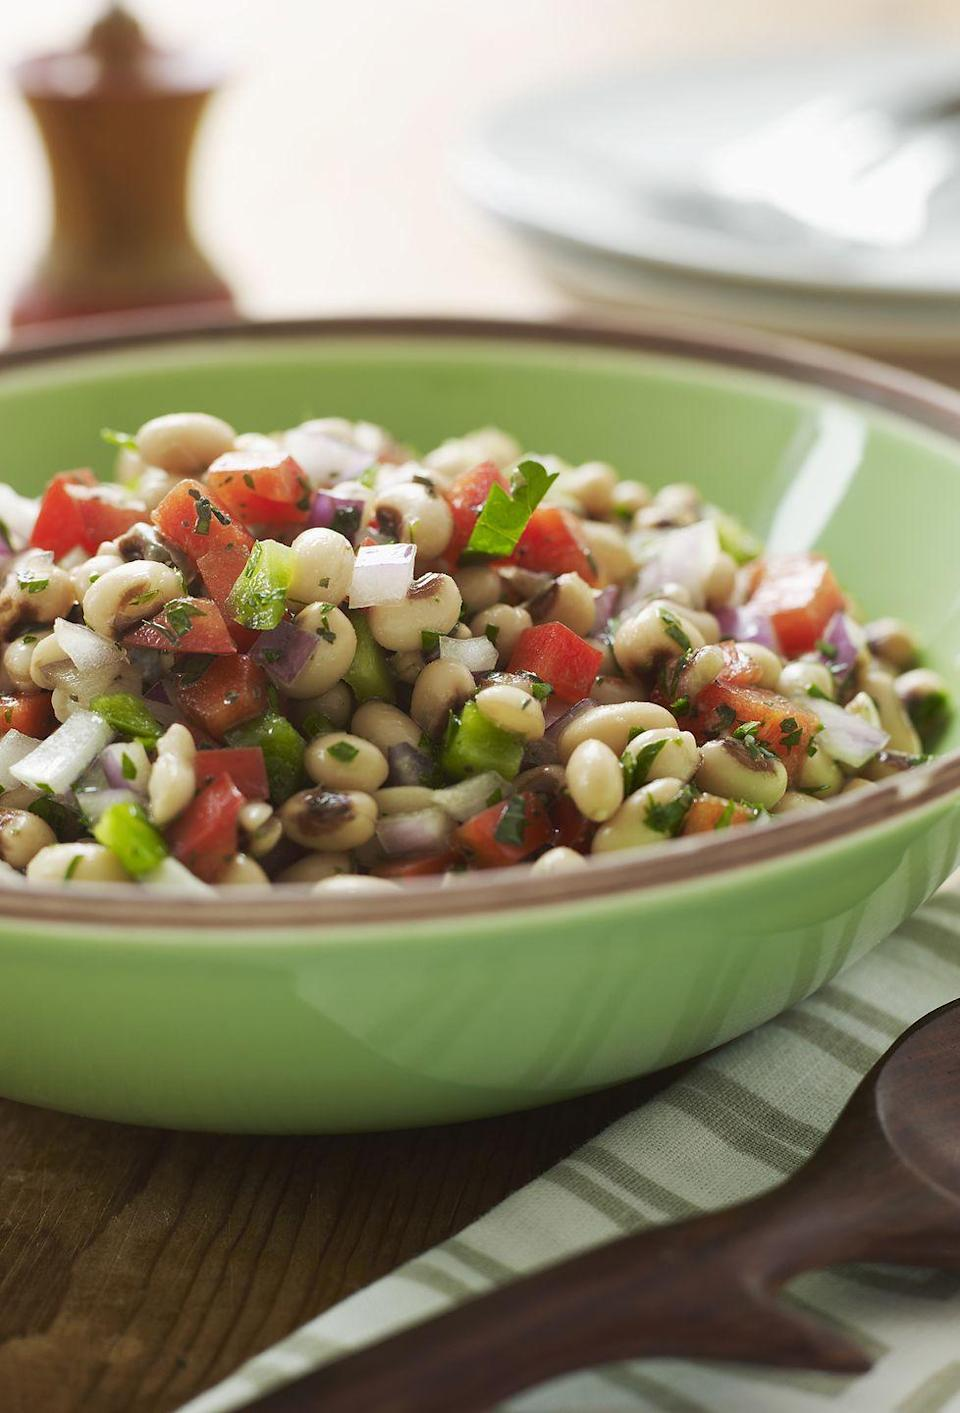 """<p>This New Year's Eve staple is a colorful display of goodness. </p><p><strong><a href=""""https://www.countryliving.com/recipefinder/black-eyed-pea-salad"""" rel=""""nofollow noopener"""" target=""""_blank"""" data-ylk=""""slk:Get the recipe"""" class=""""link rapid-noclick-resp"""">Get the recipe</a>.</strong></p>"""